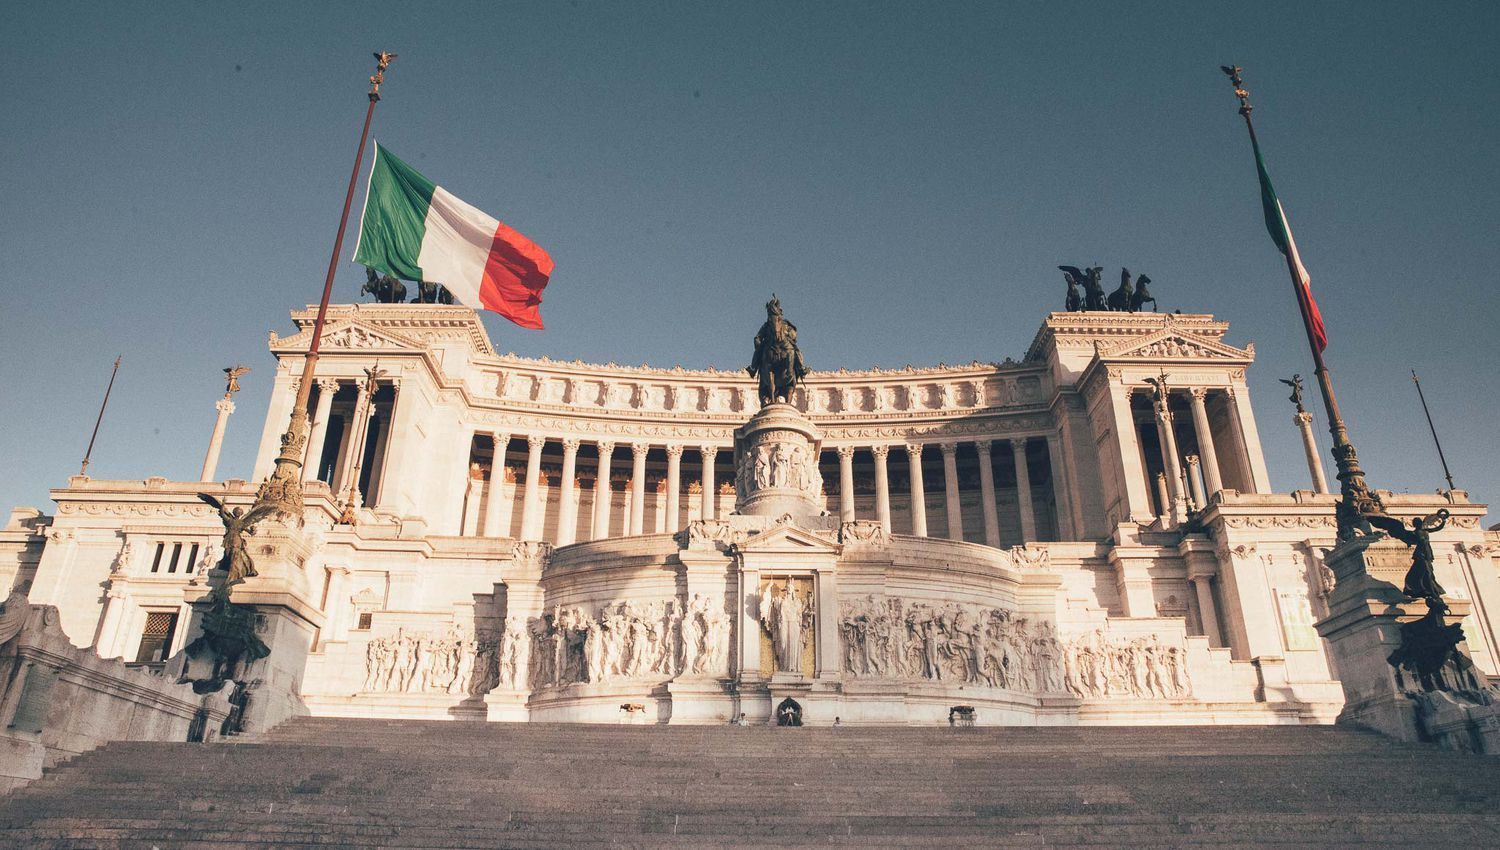 Victor Emmanuel II Monument - 3 Days in Rome Itinerary